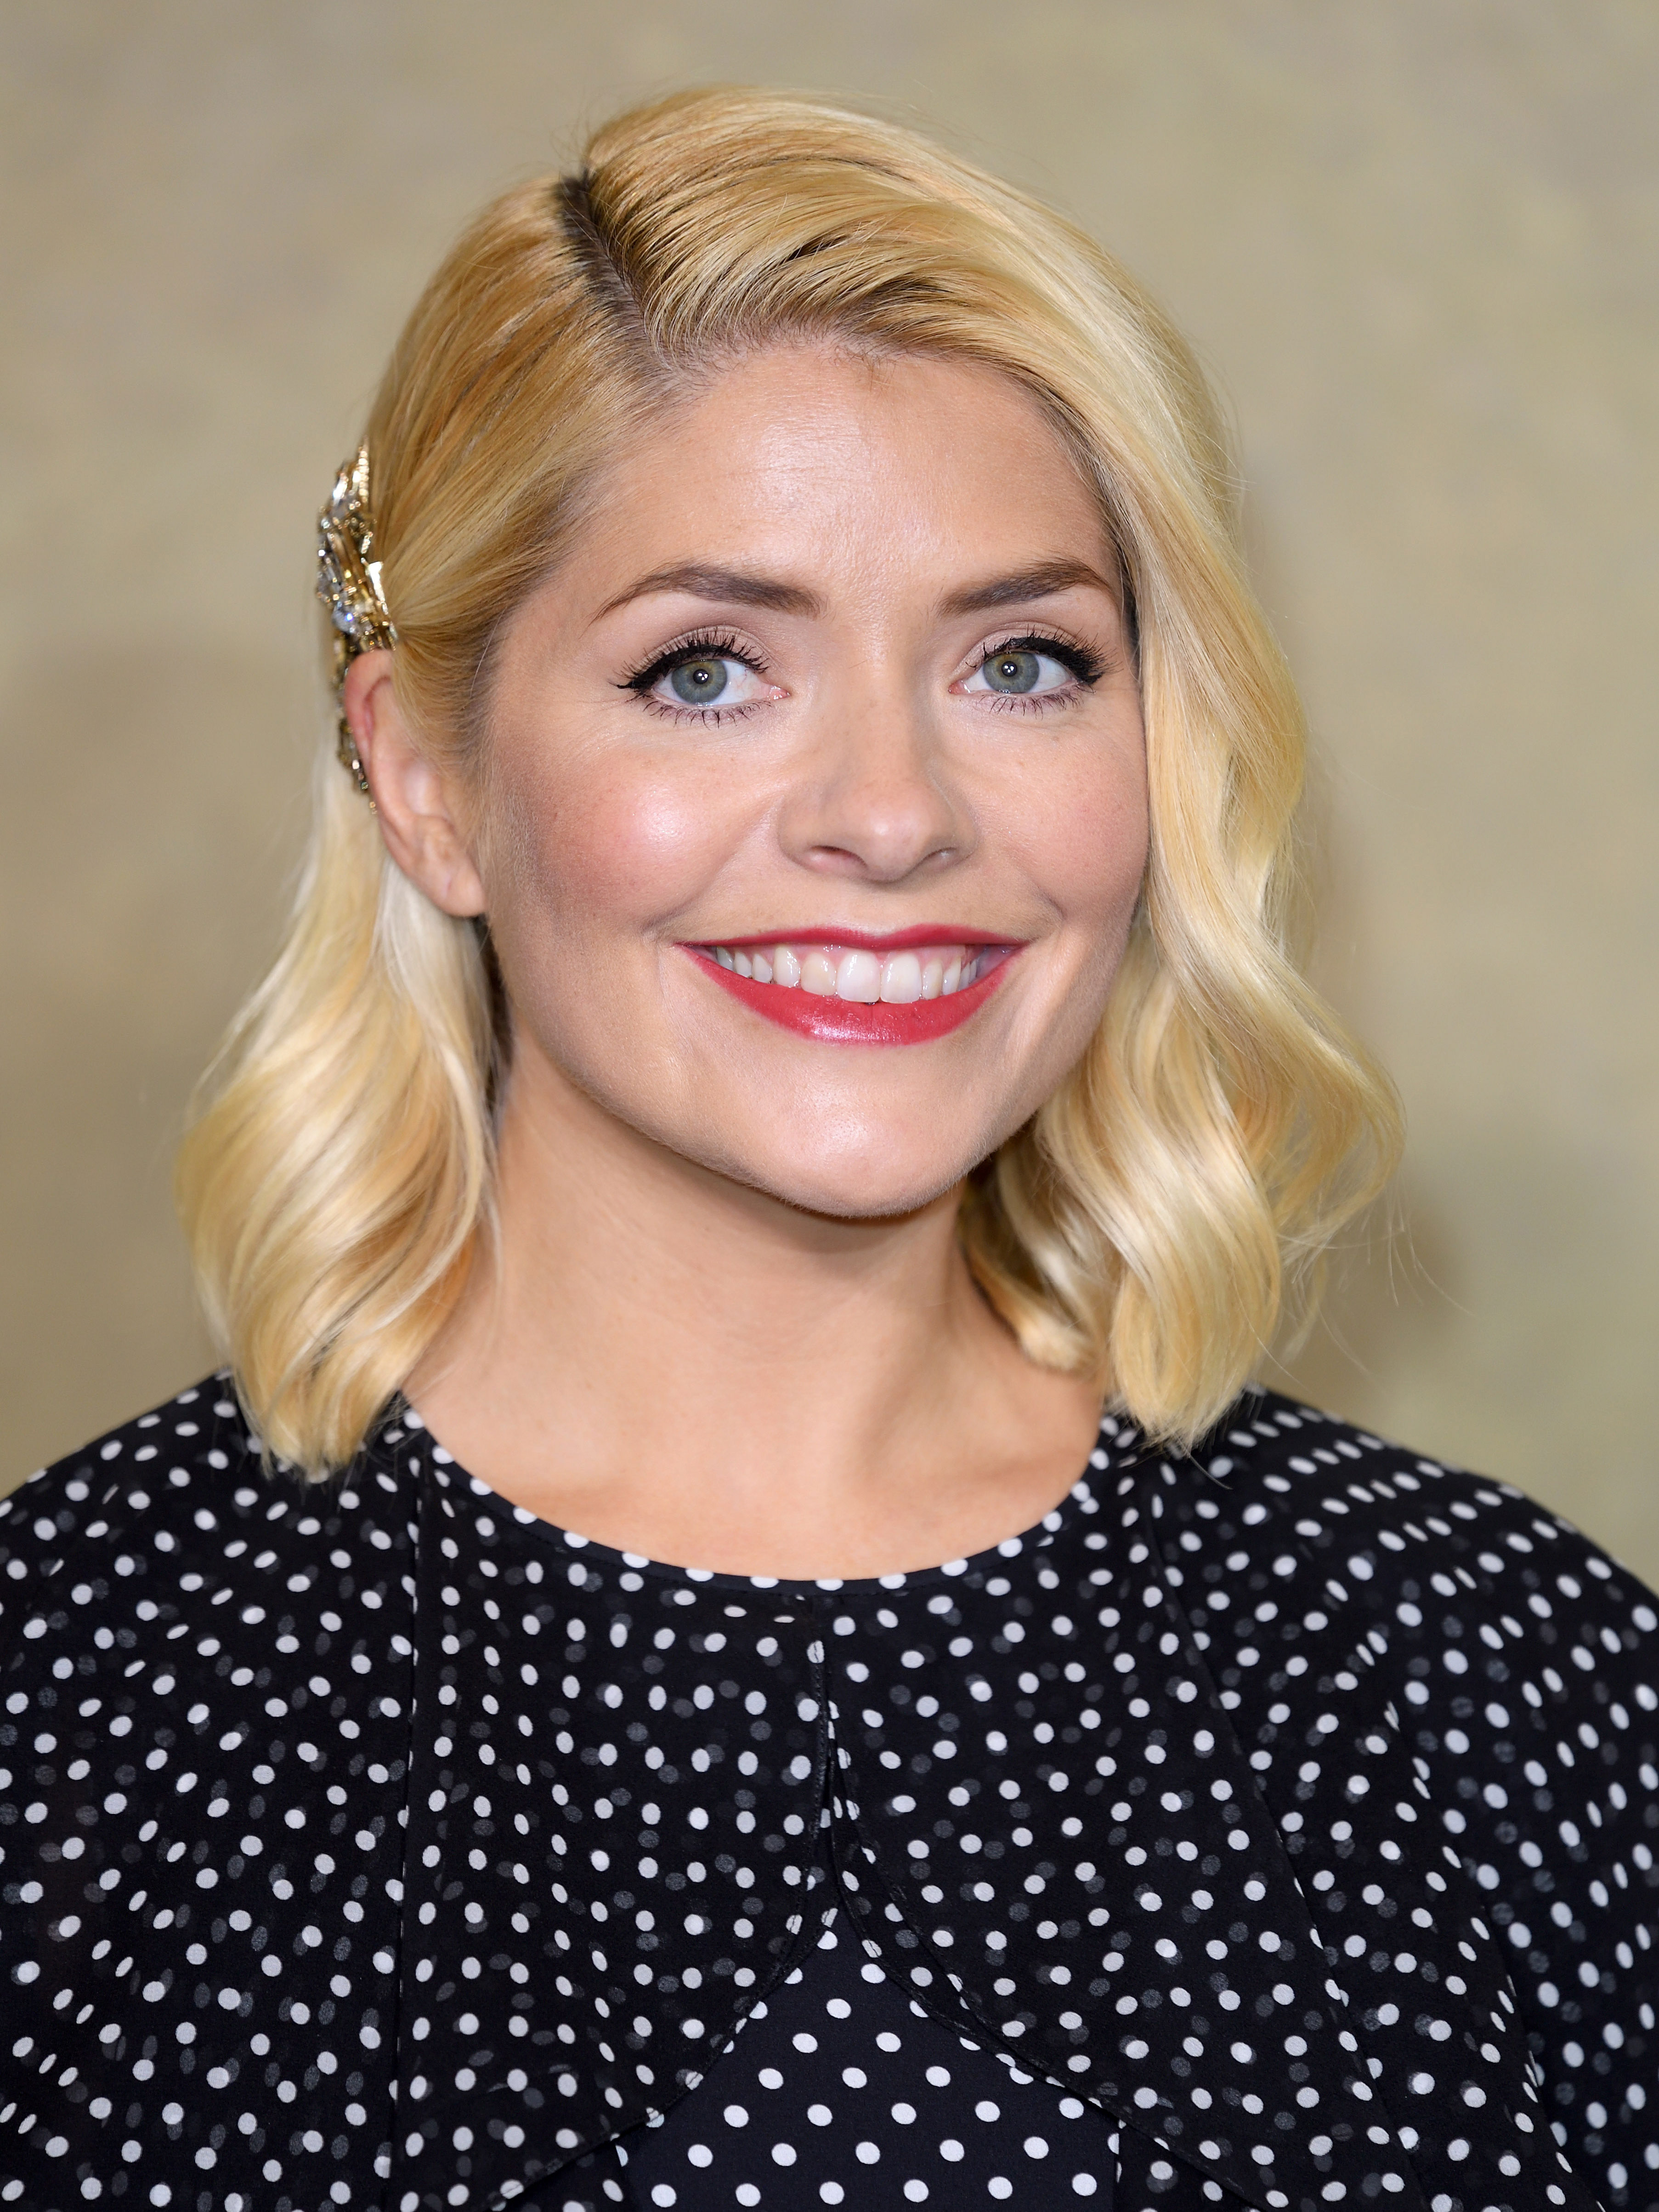 Holly Willoughby looks gorgeous in figure-hugging white swimsuit as she shares hilarious rare snap of prankster son Harry